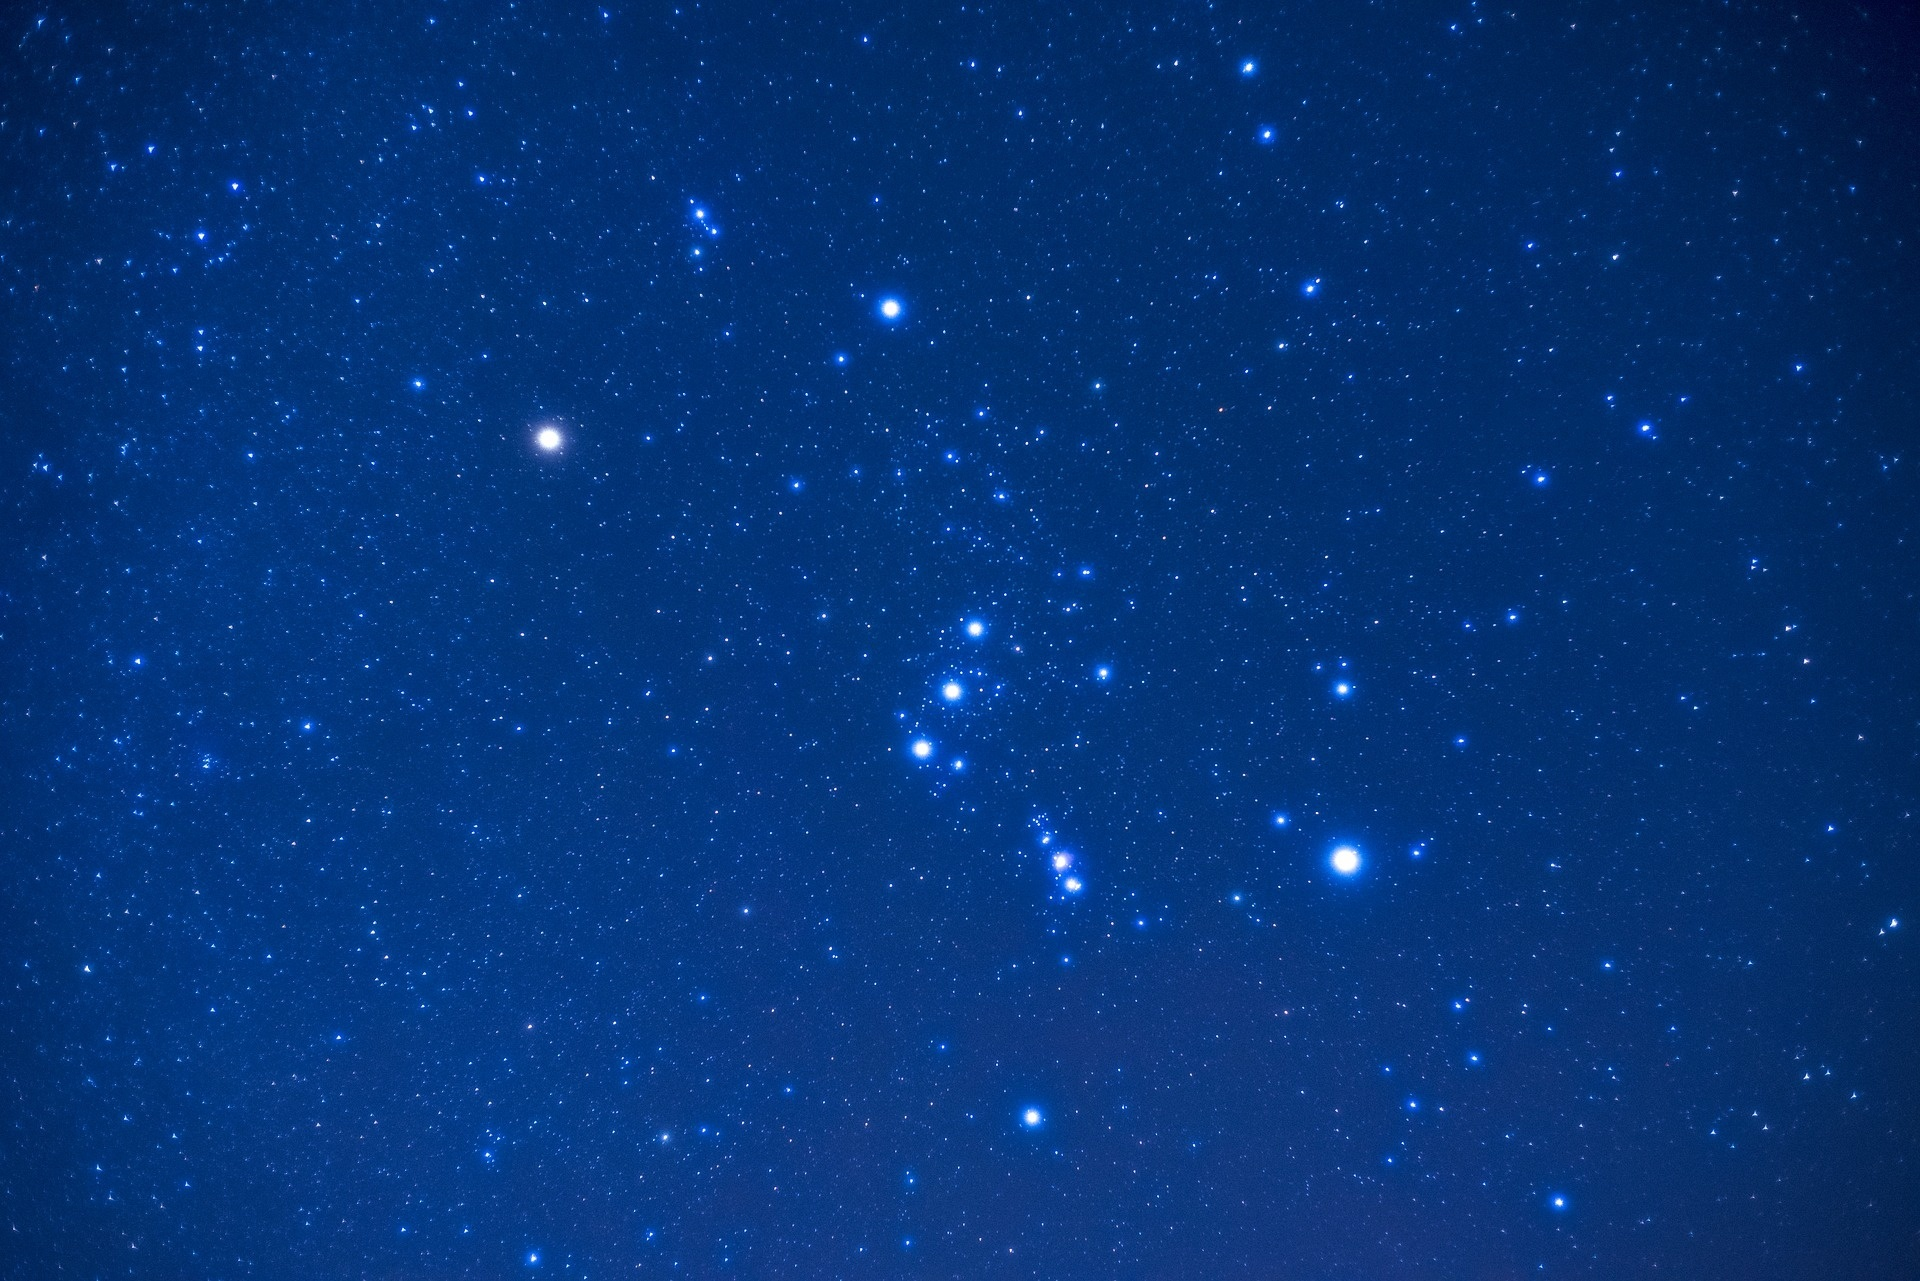 The comet is visble in the constellation Orion